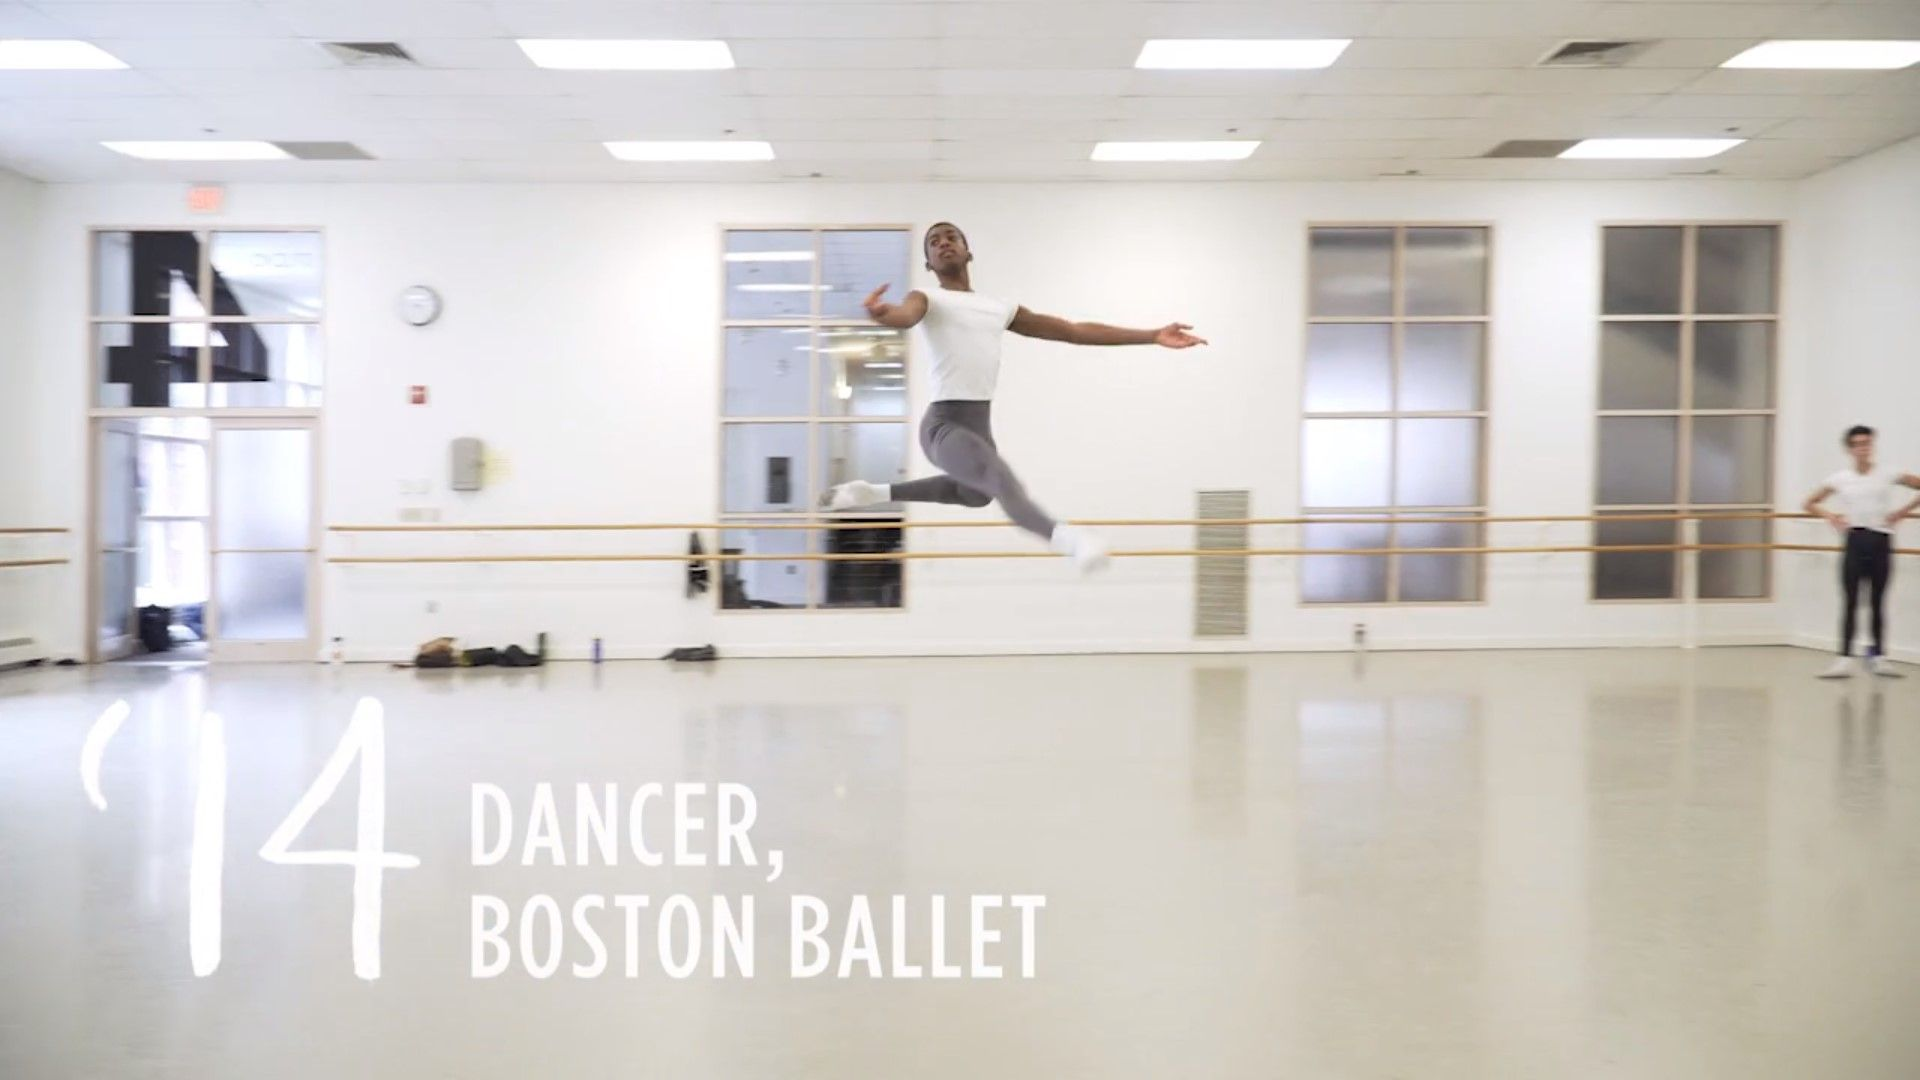 Zion is in his second year of the Boston Ballet's Pre-Professional Program, having reached the rank of Trainee. Zion was awarded the 2017-2018 Boston Ballet Pao Scholarship and danced at Ballet Arizona and the Pennsylvania Ballet this past summer.  Zion is in the process of completing his high school studies ahead of schedule and will audition for his first professional position with a ballet company in the spring of 2018.